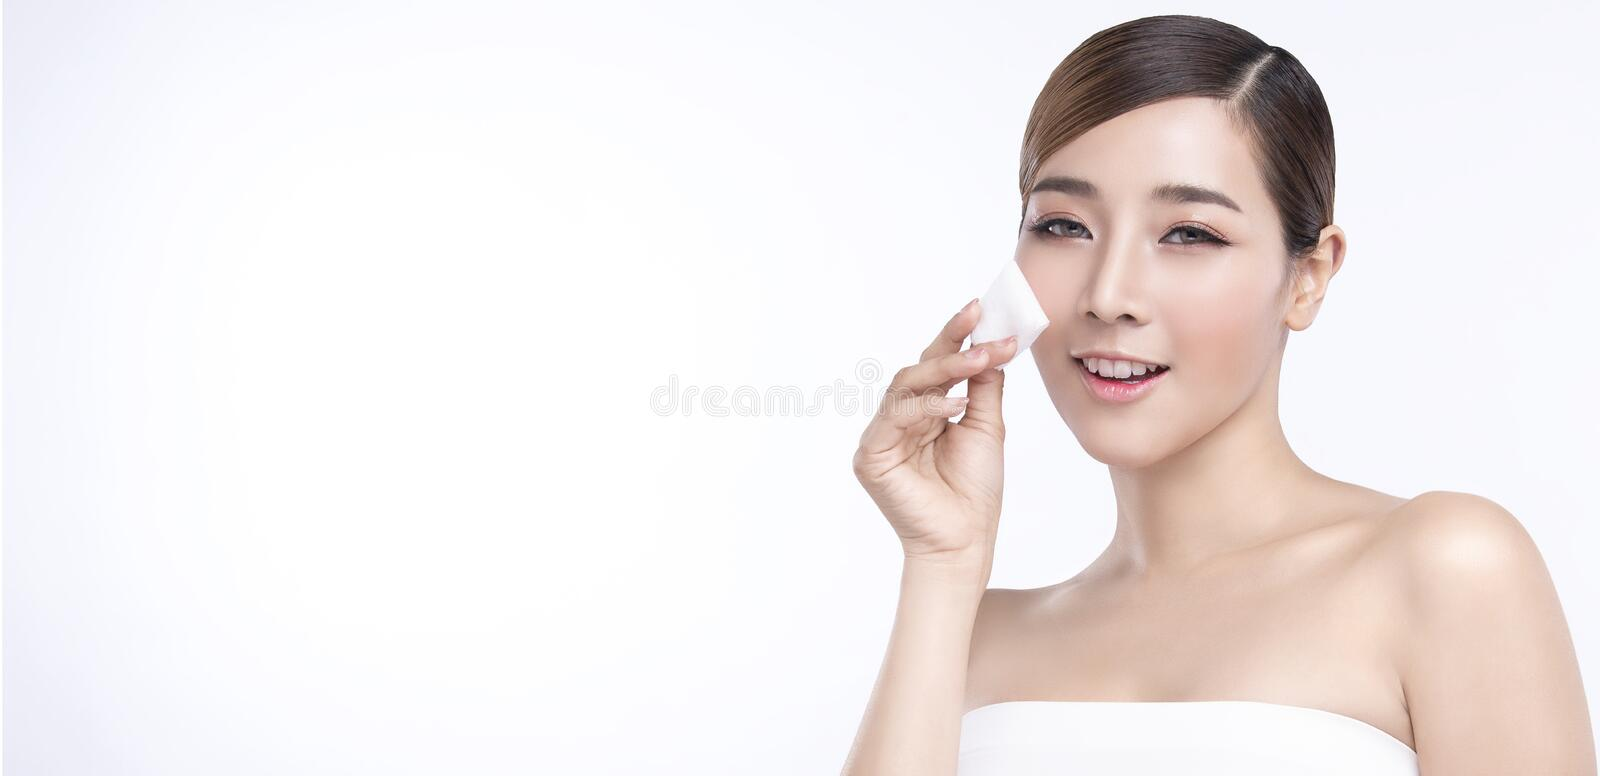 Beauty Young Asian Woman With Perfect Facial Skin Gestures For Advertisement Treatment Spa And Cosmetology On White Banner Stock Image Image Of Fresh Eyes 161800251